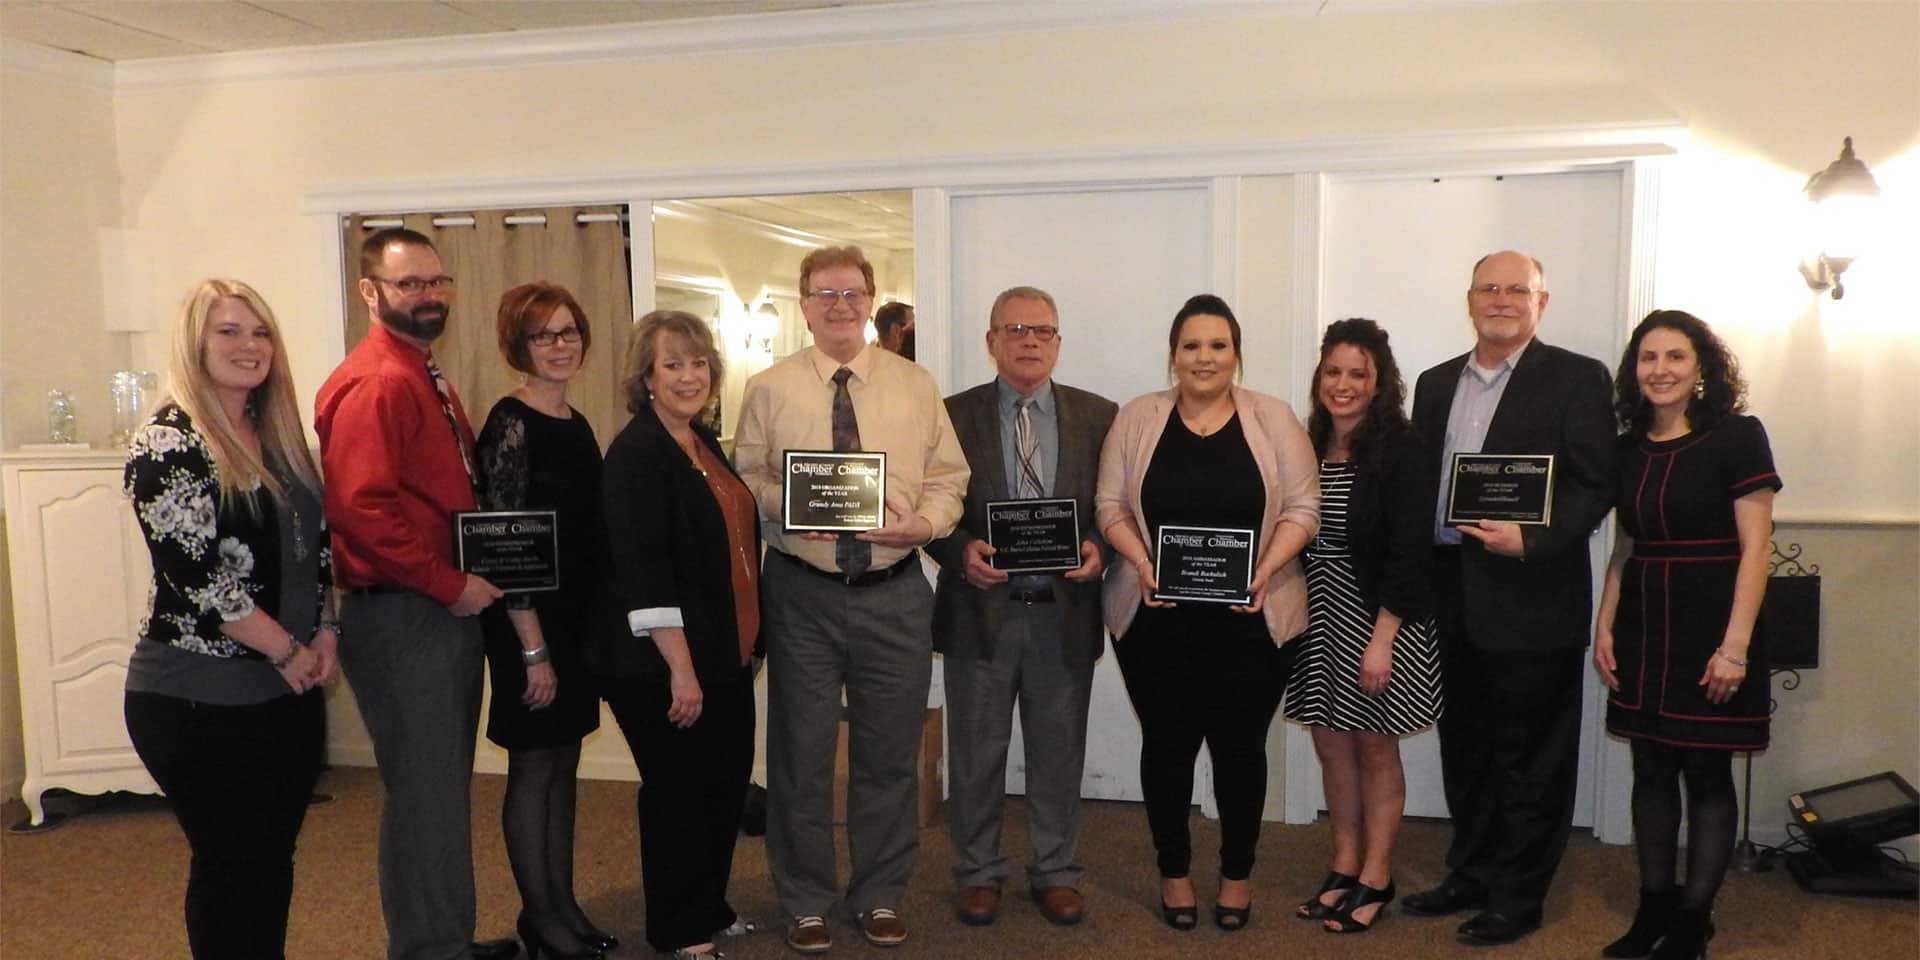 Chamber annual dinner winners